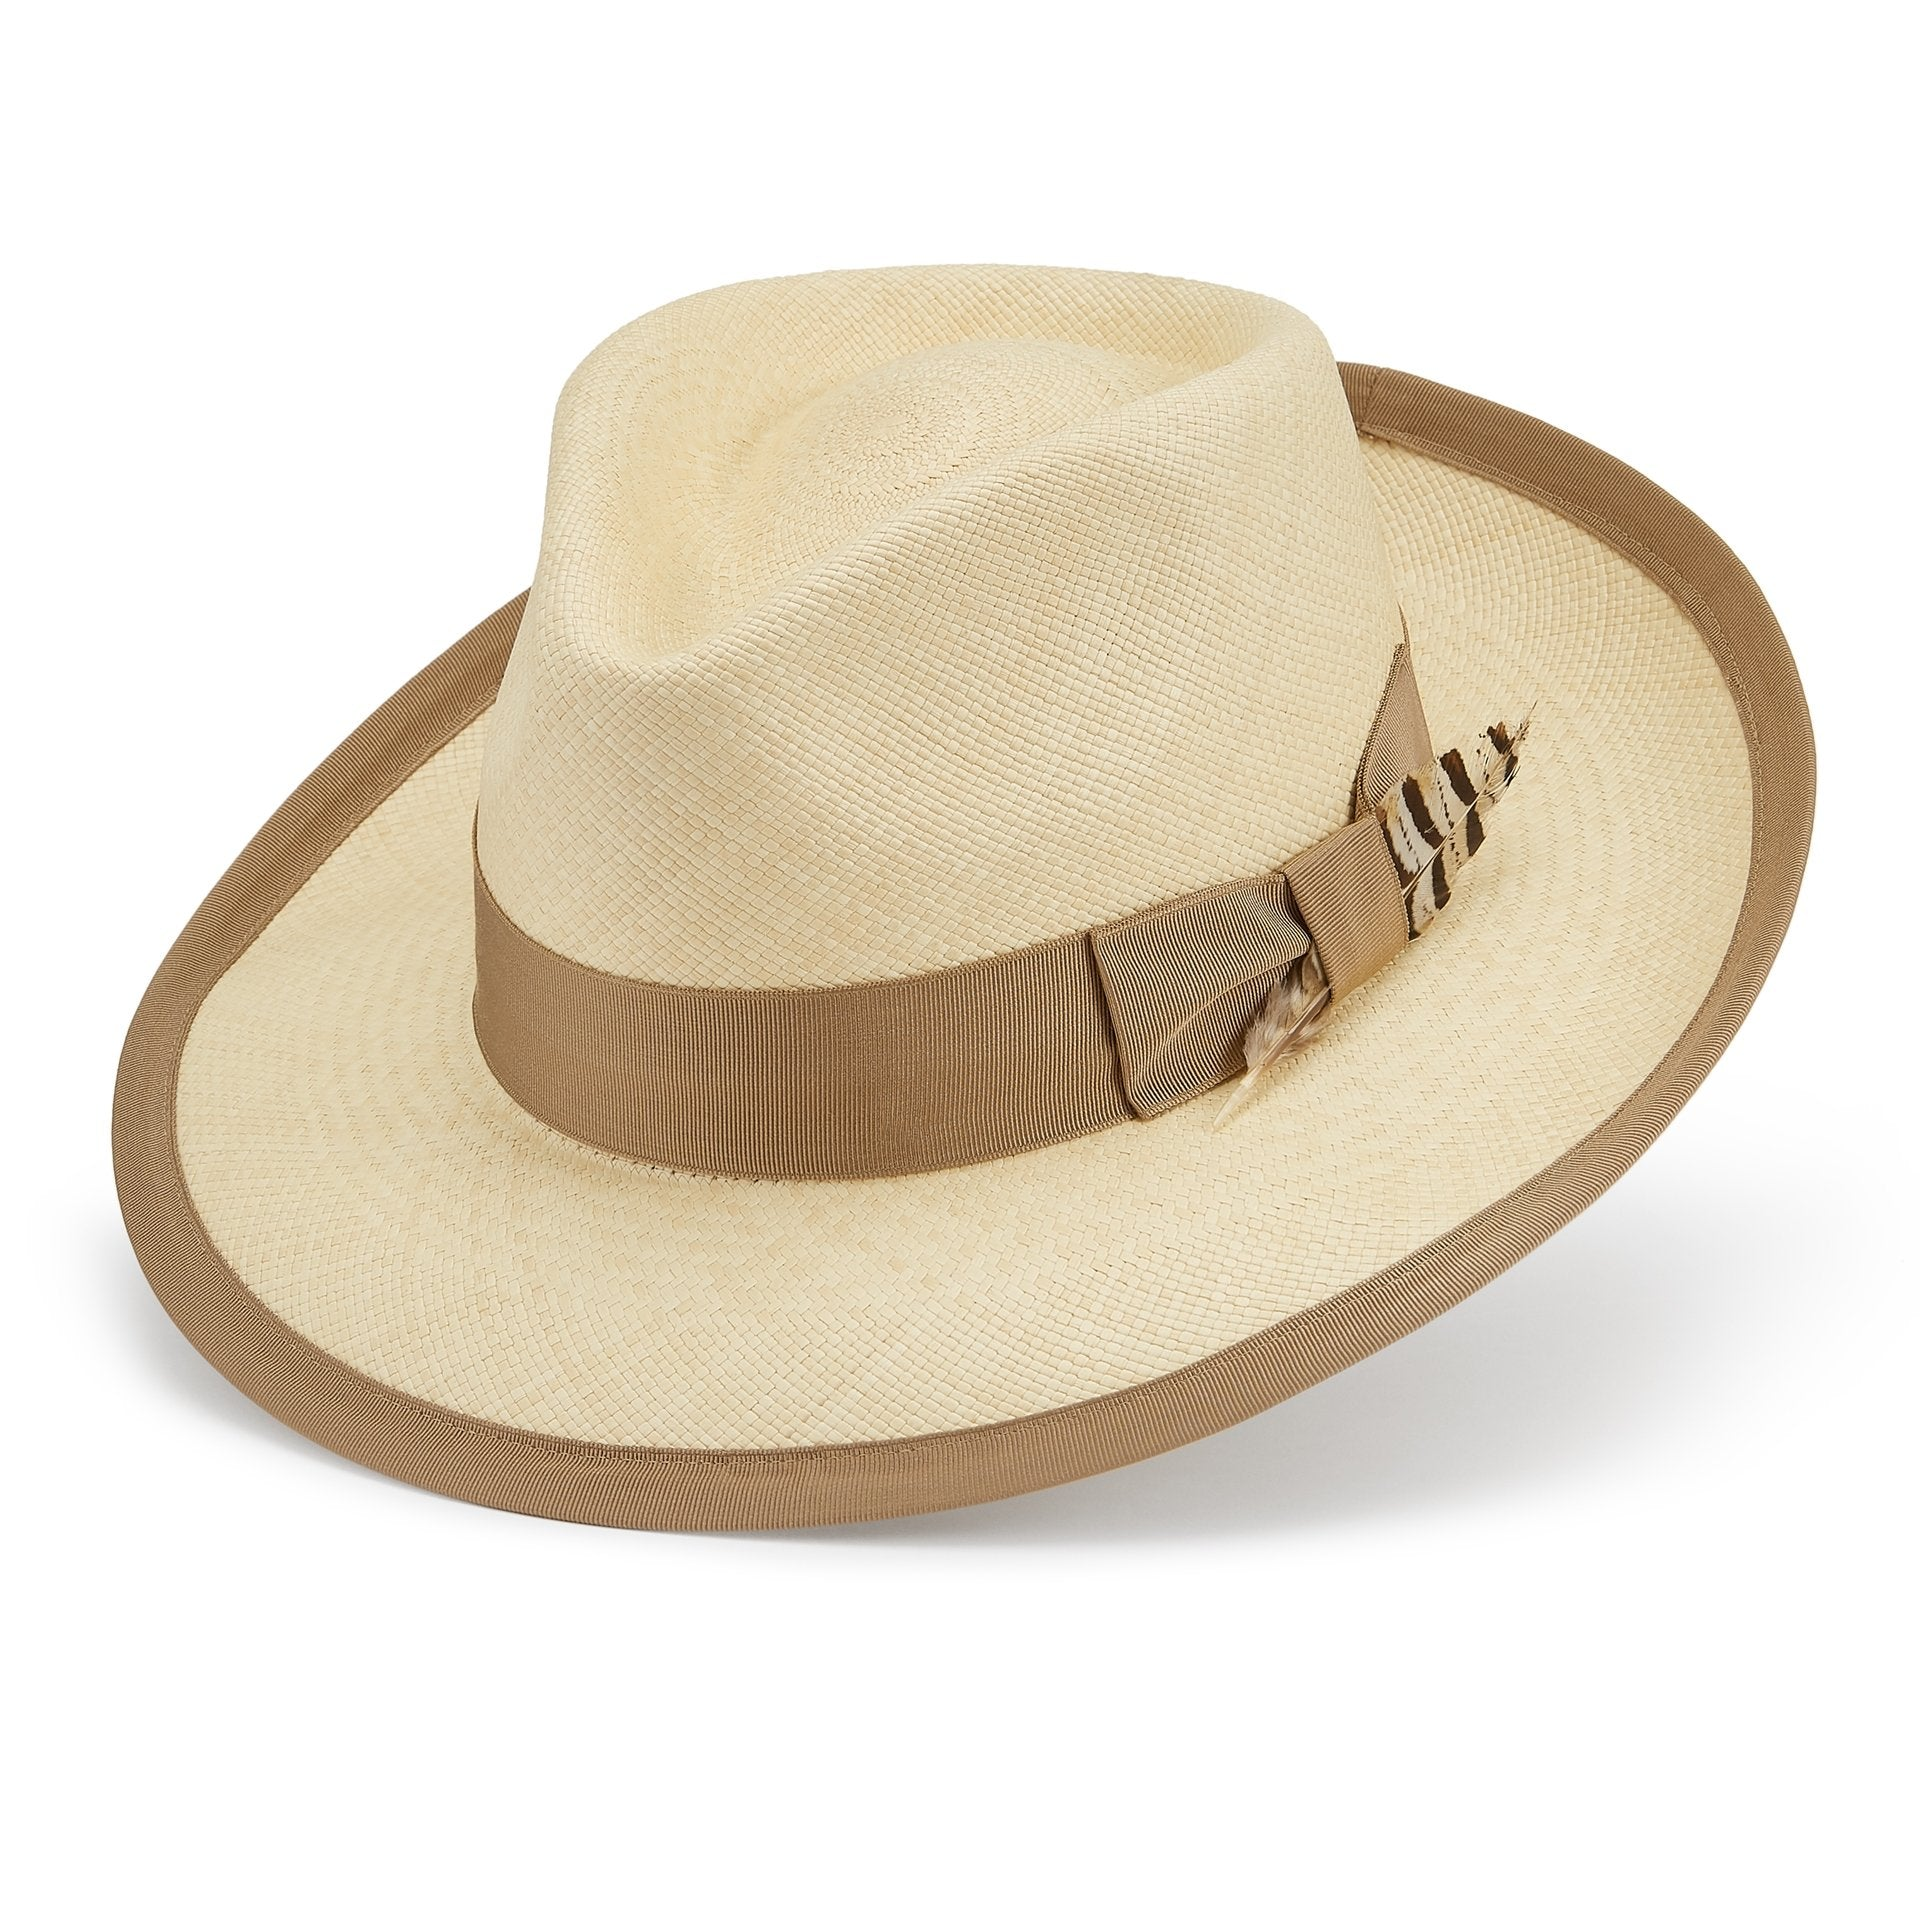 San Diego Panama hat - Panamas, Boaters and Straw sun hats - Lock & Co. Hatters London UK